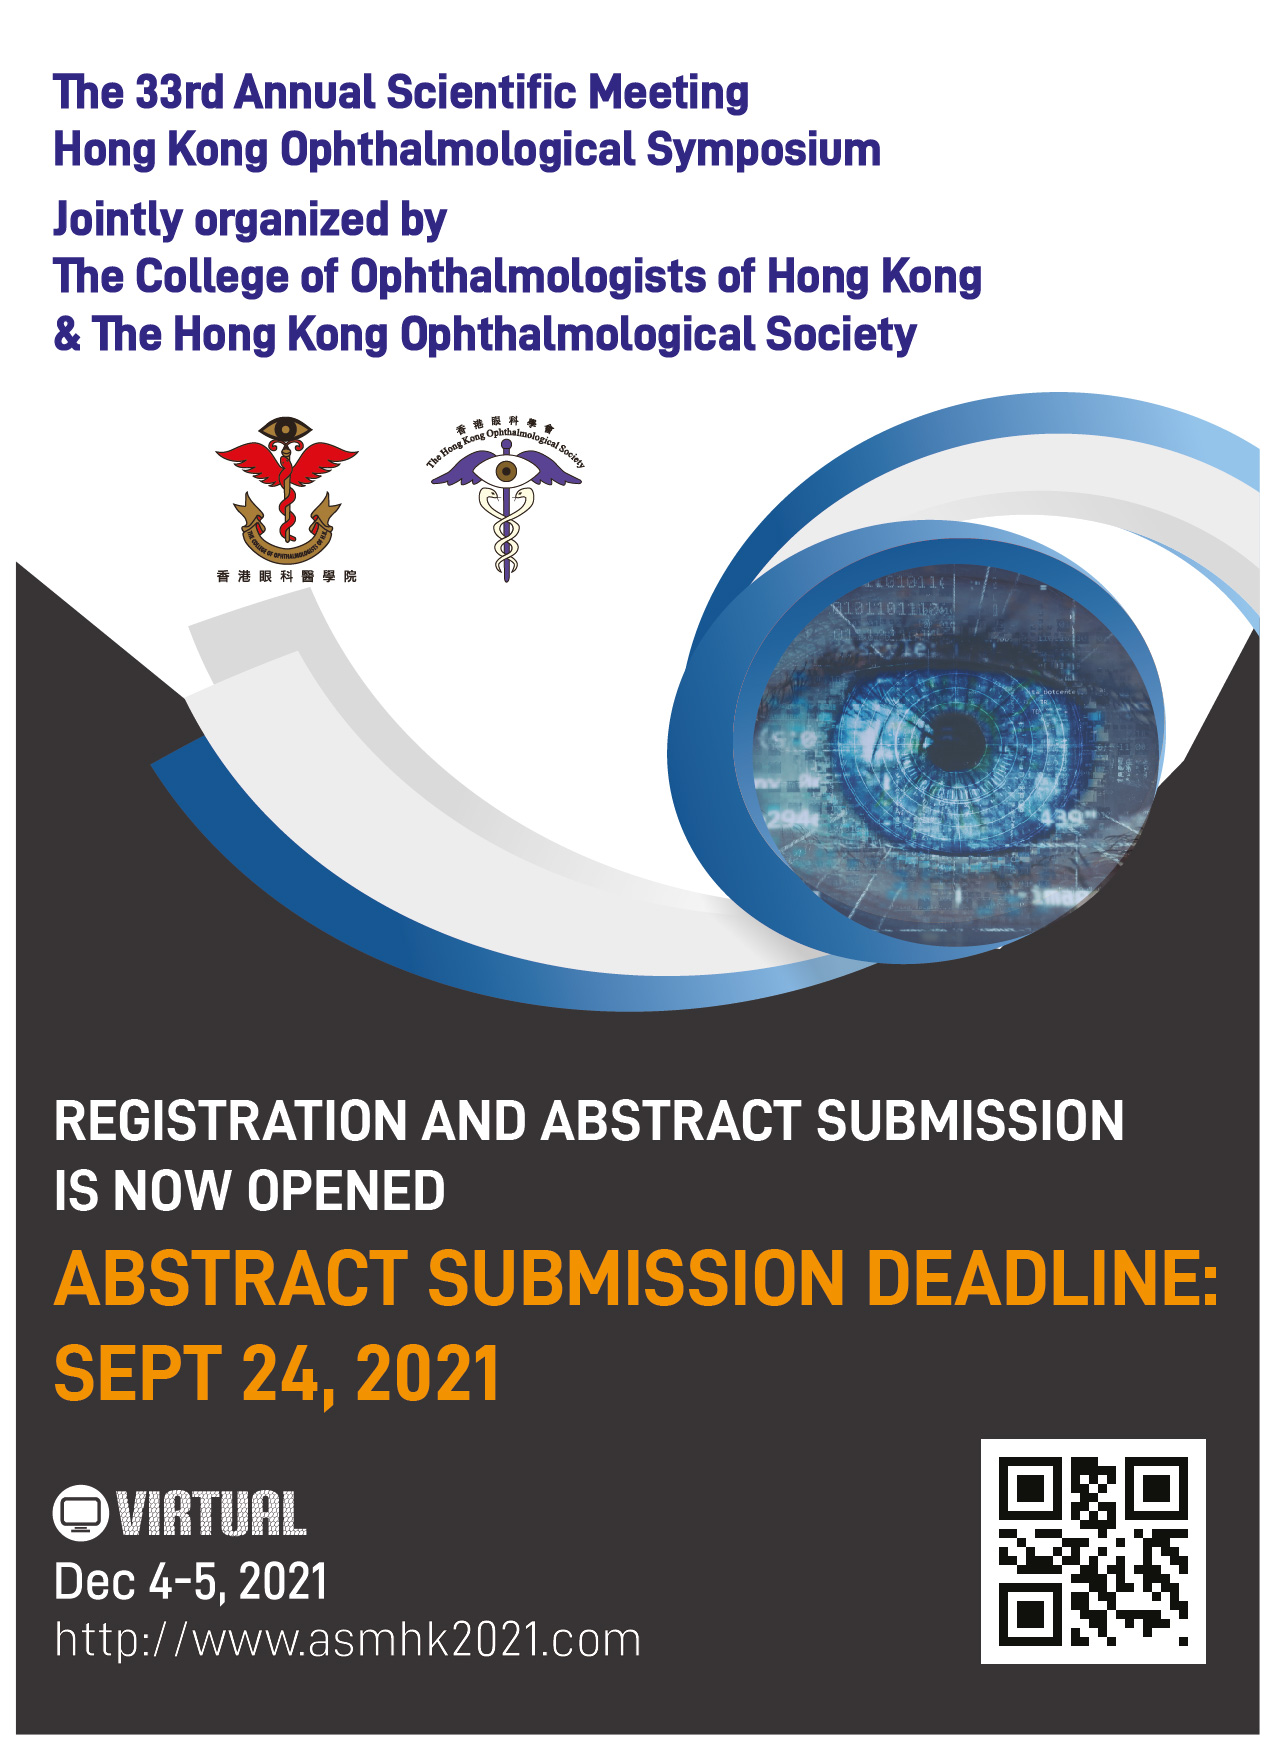 The 33rd Annual Scientific Meeting Hong Kong Ophthalmological Symposium